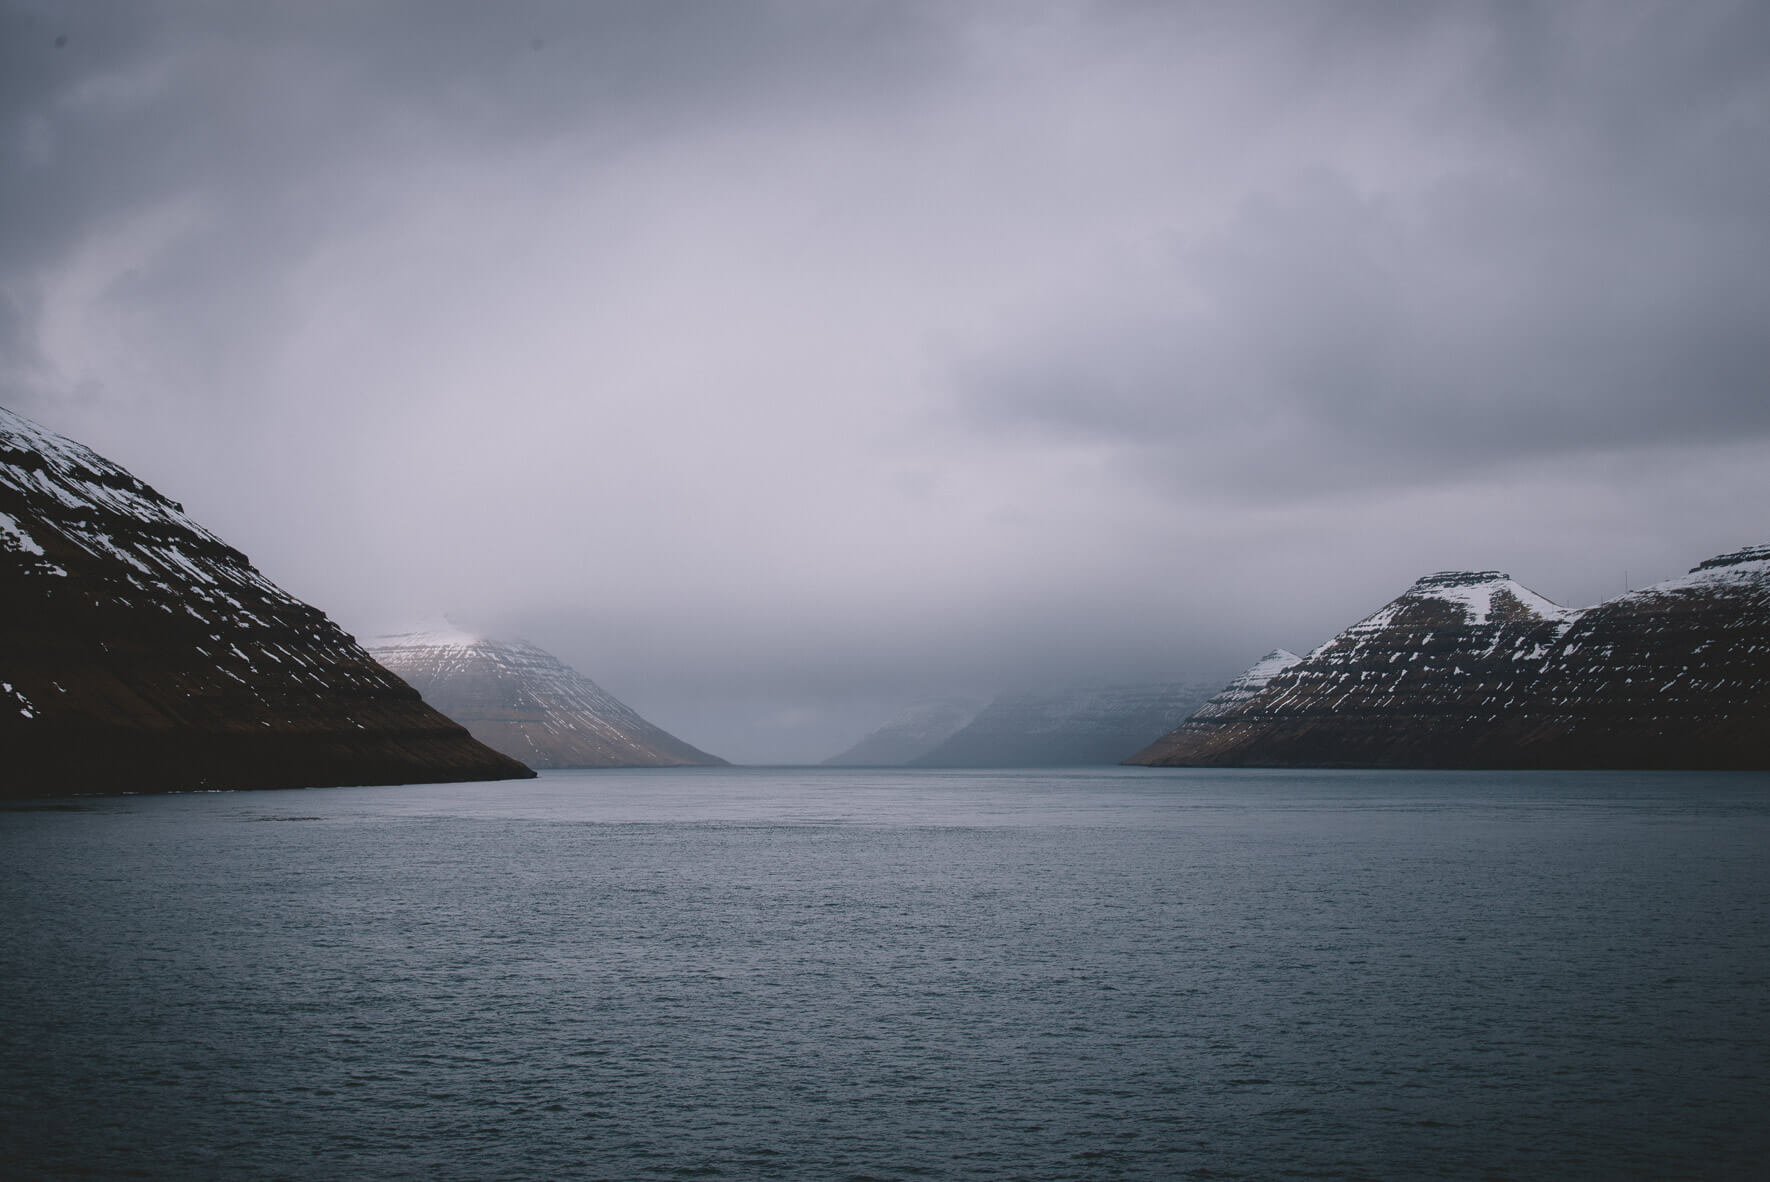 The mountains of the Faroe Islands in Winter